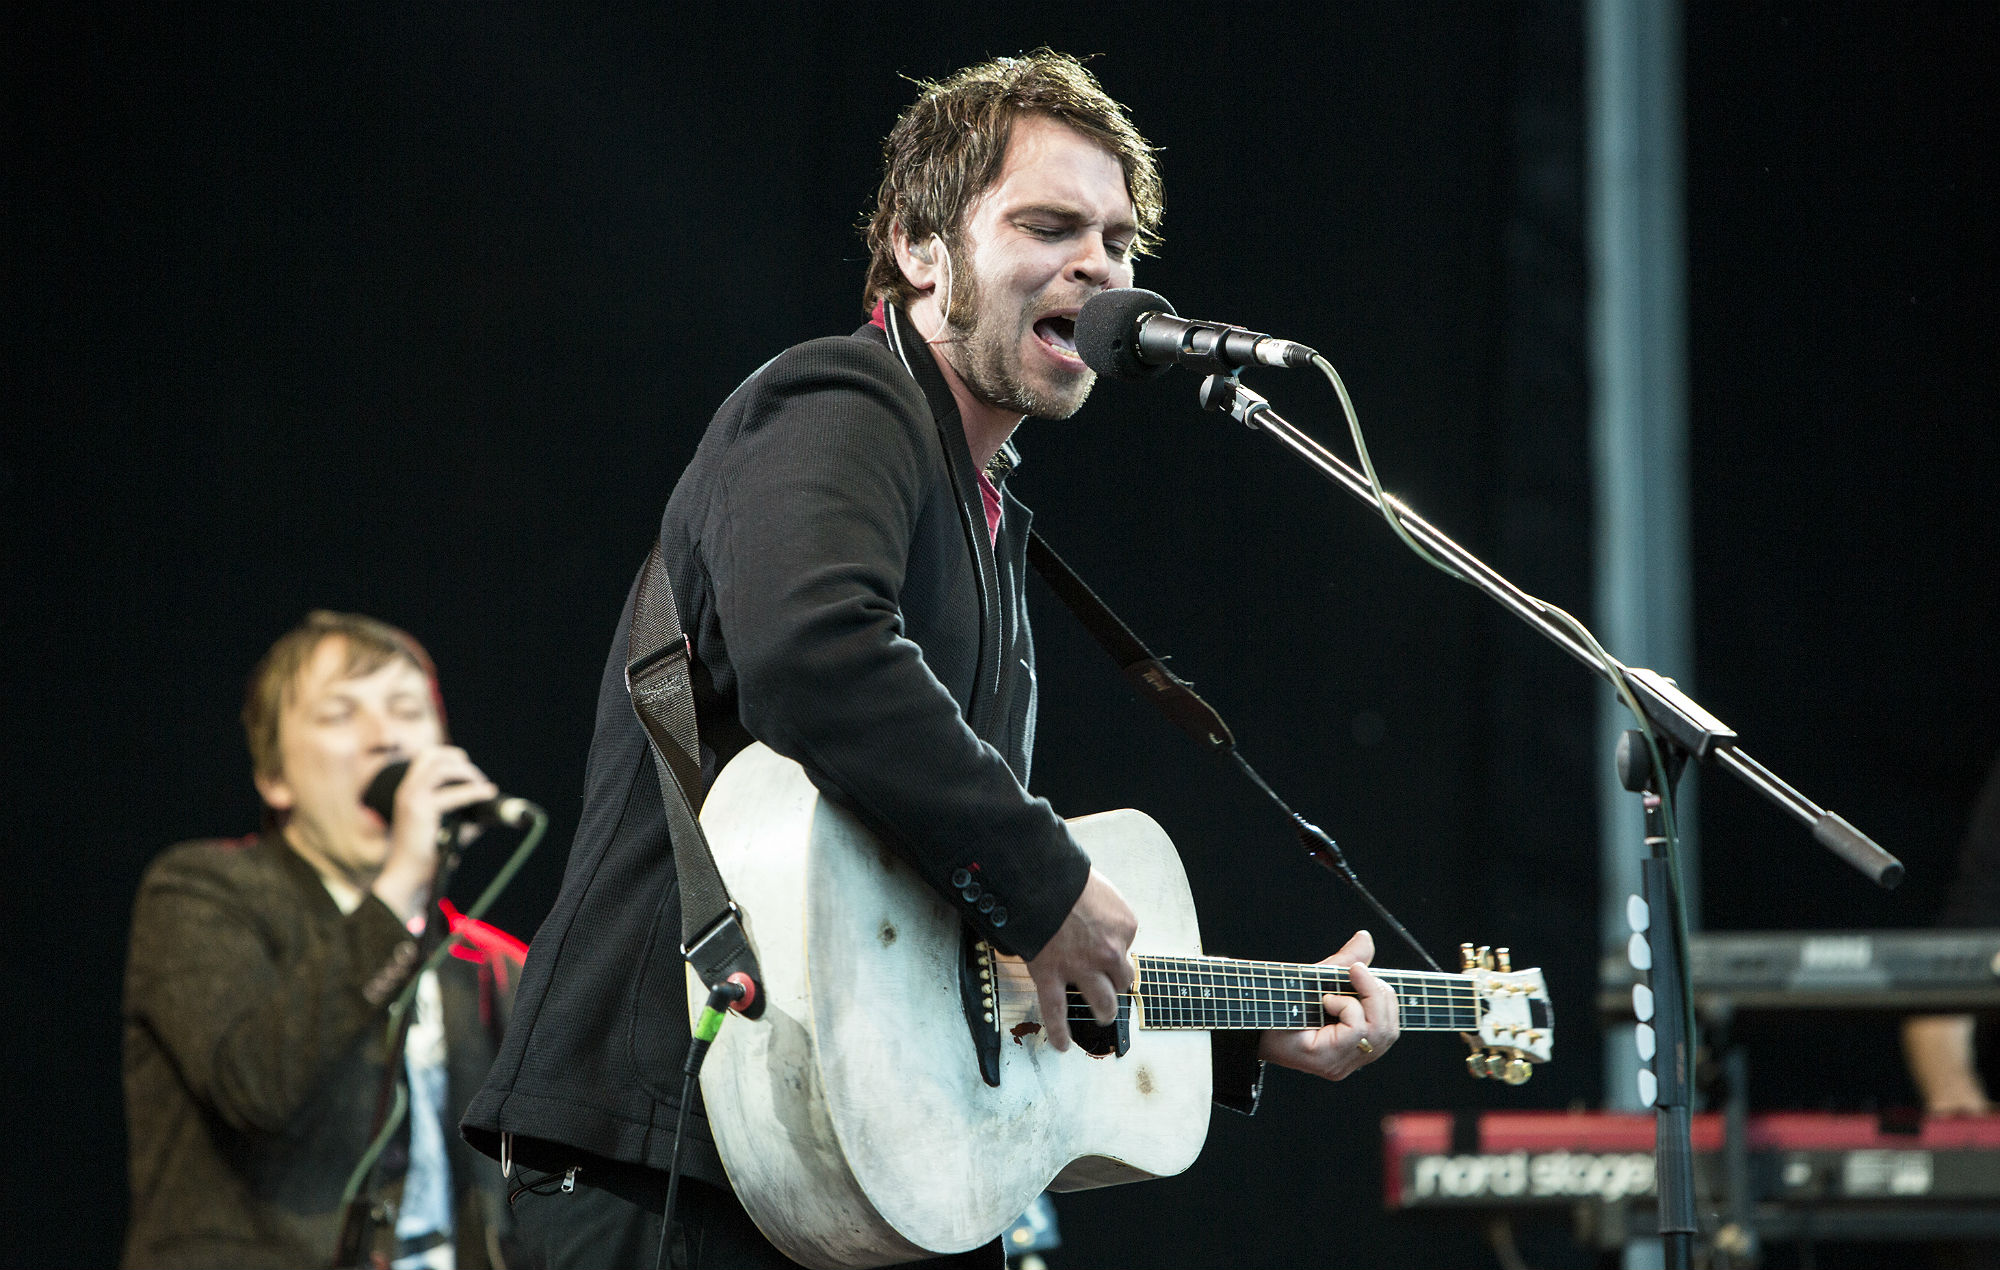 Gaz Coombes performs on stage at Bingley Music Live Festival